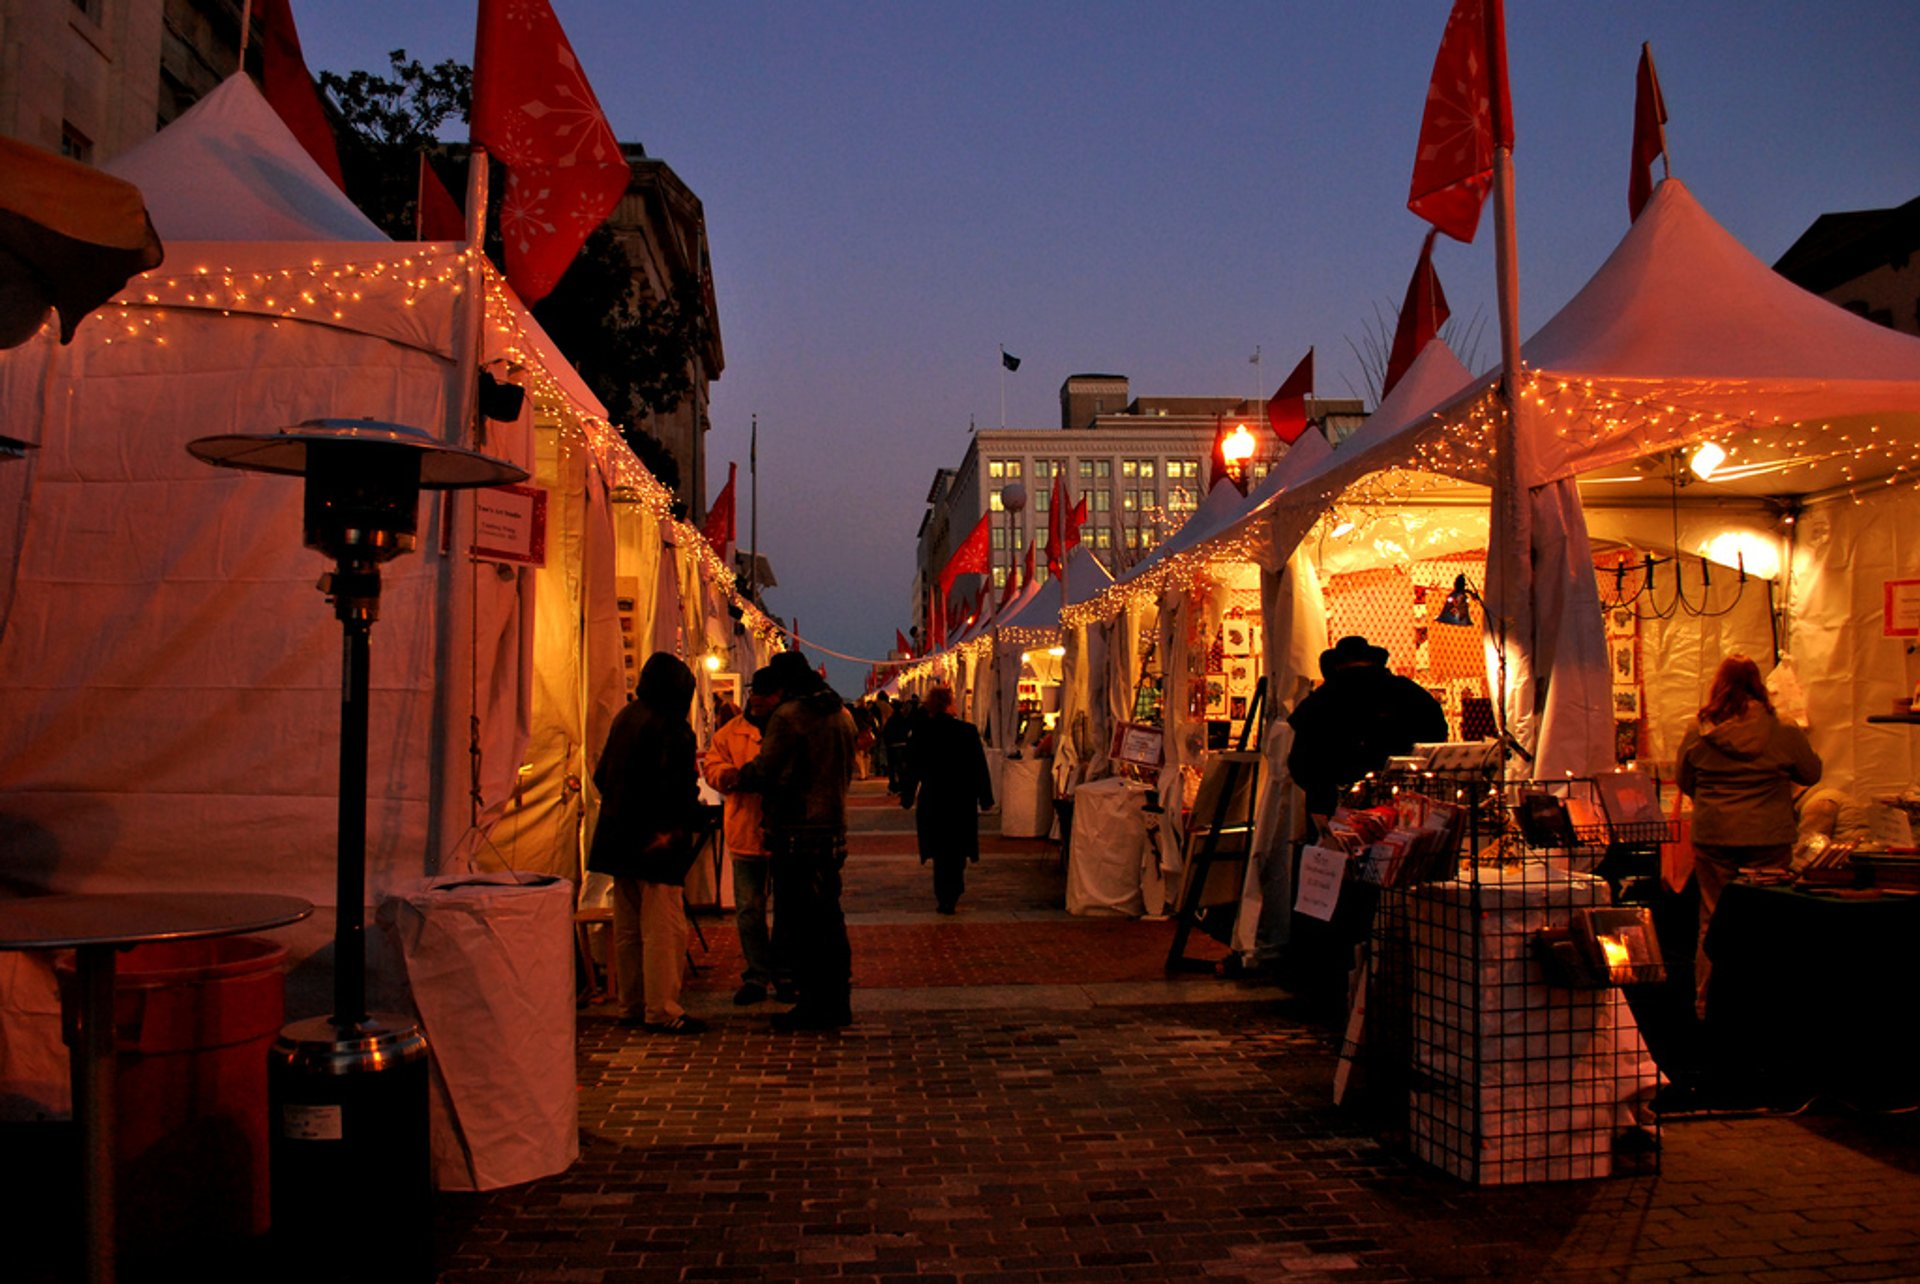 Downtown Holiday Market in Washington, D.C. - Best Season 2019